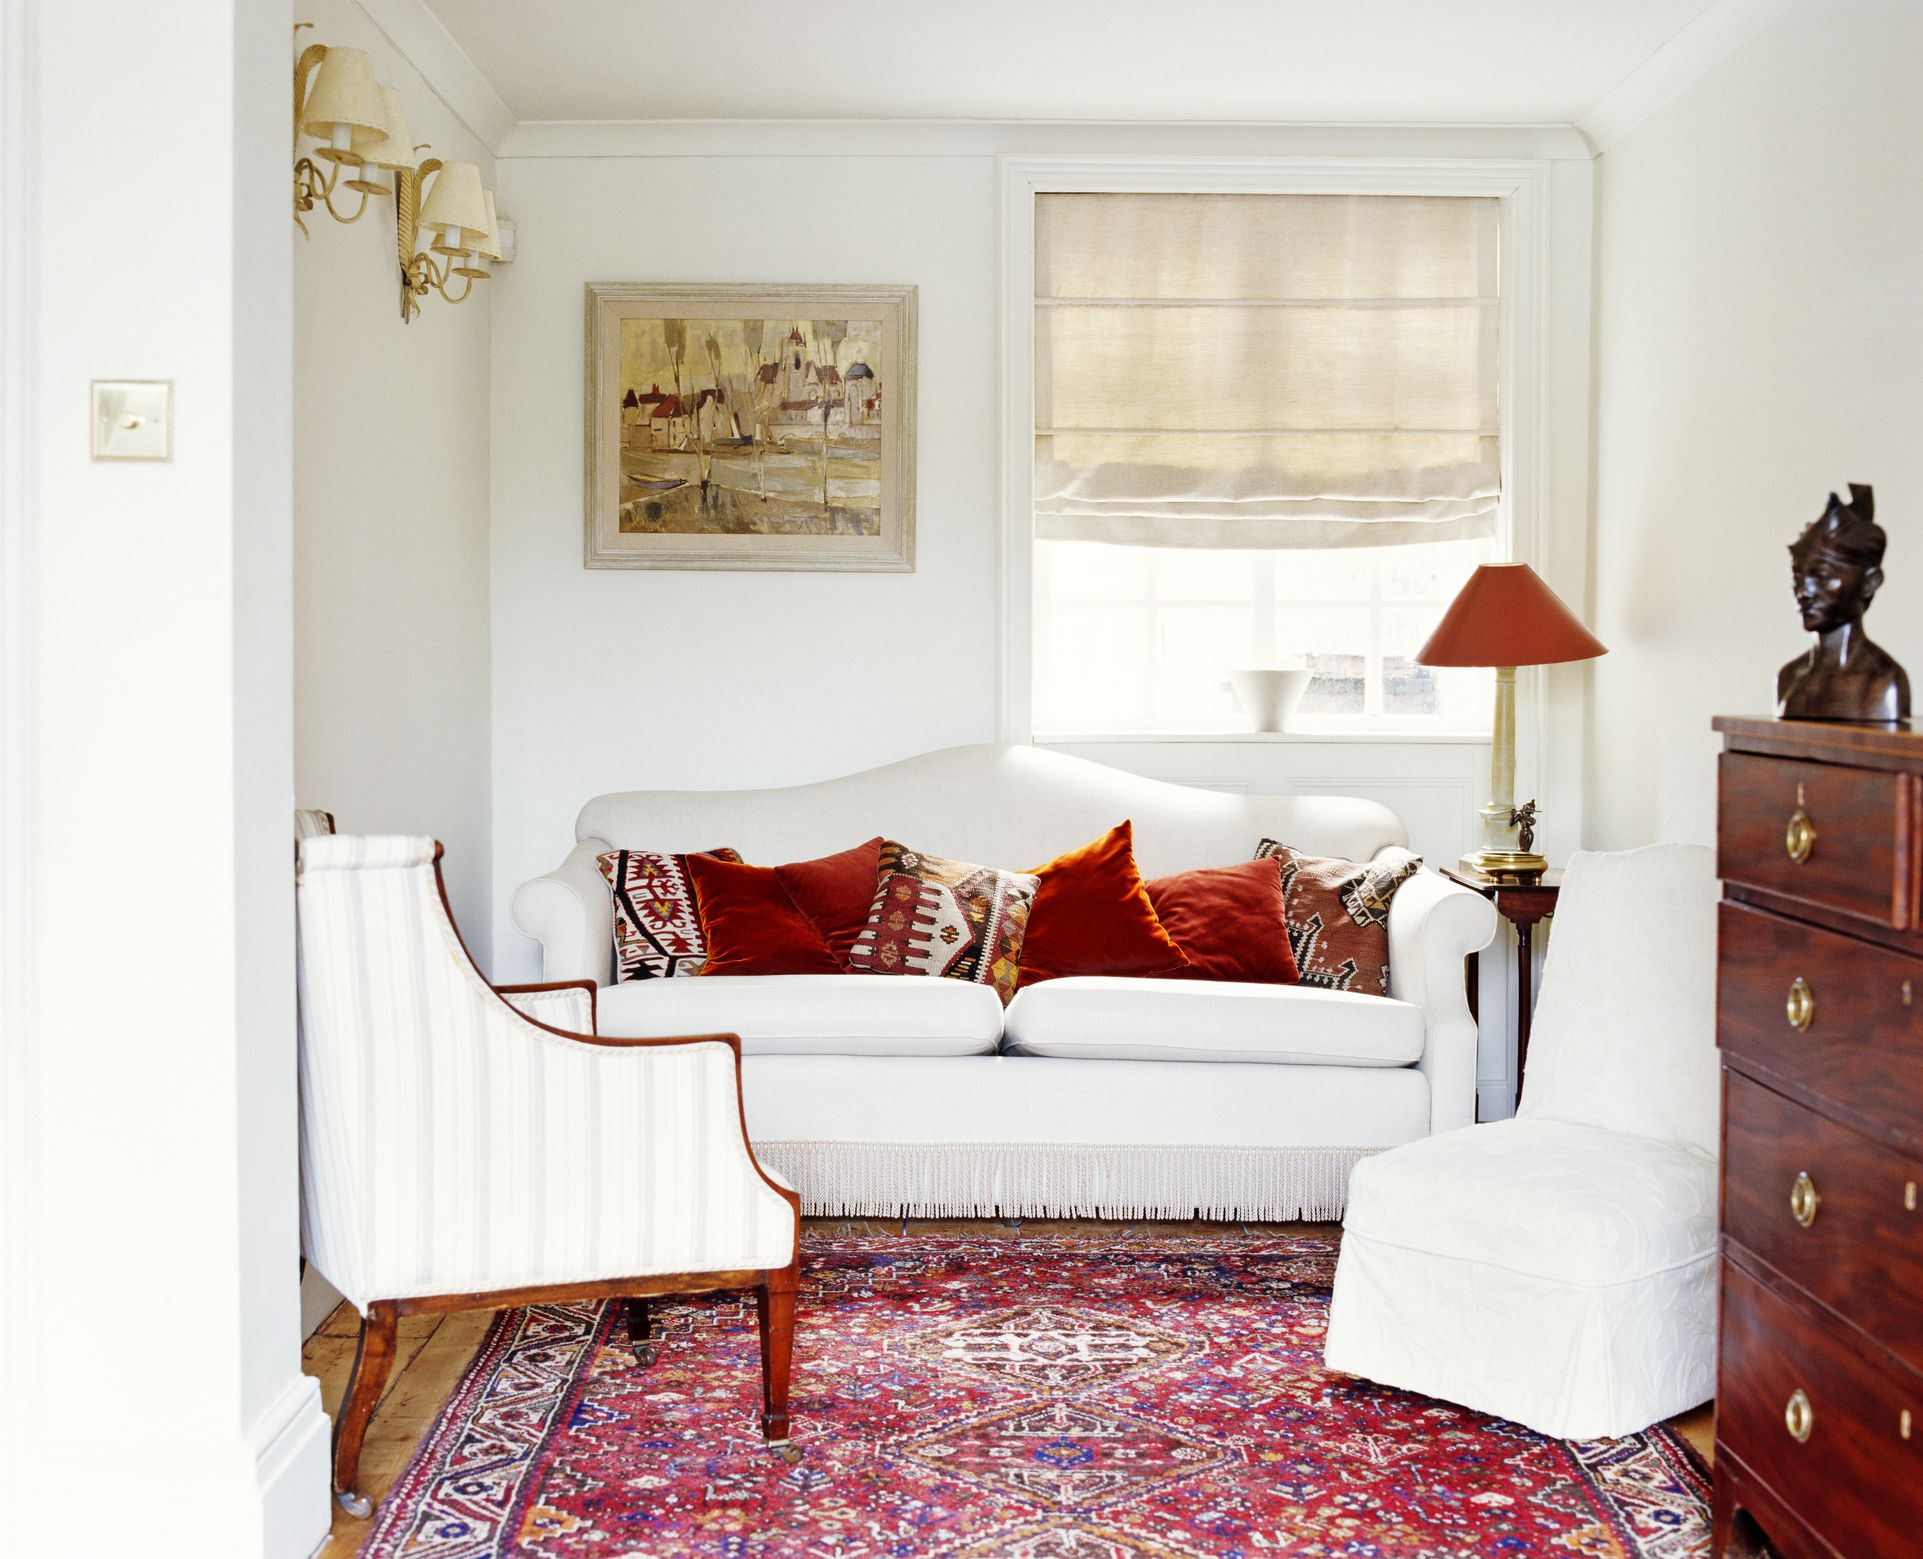 Don t buy an area rug without considering these tips. How to Choose the Right Size Area Rug for Your Bedroom